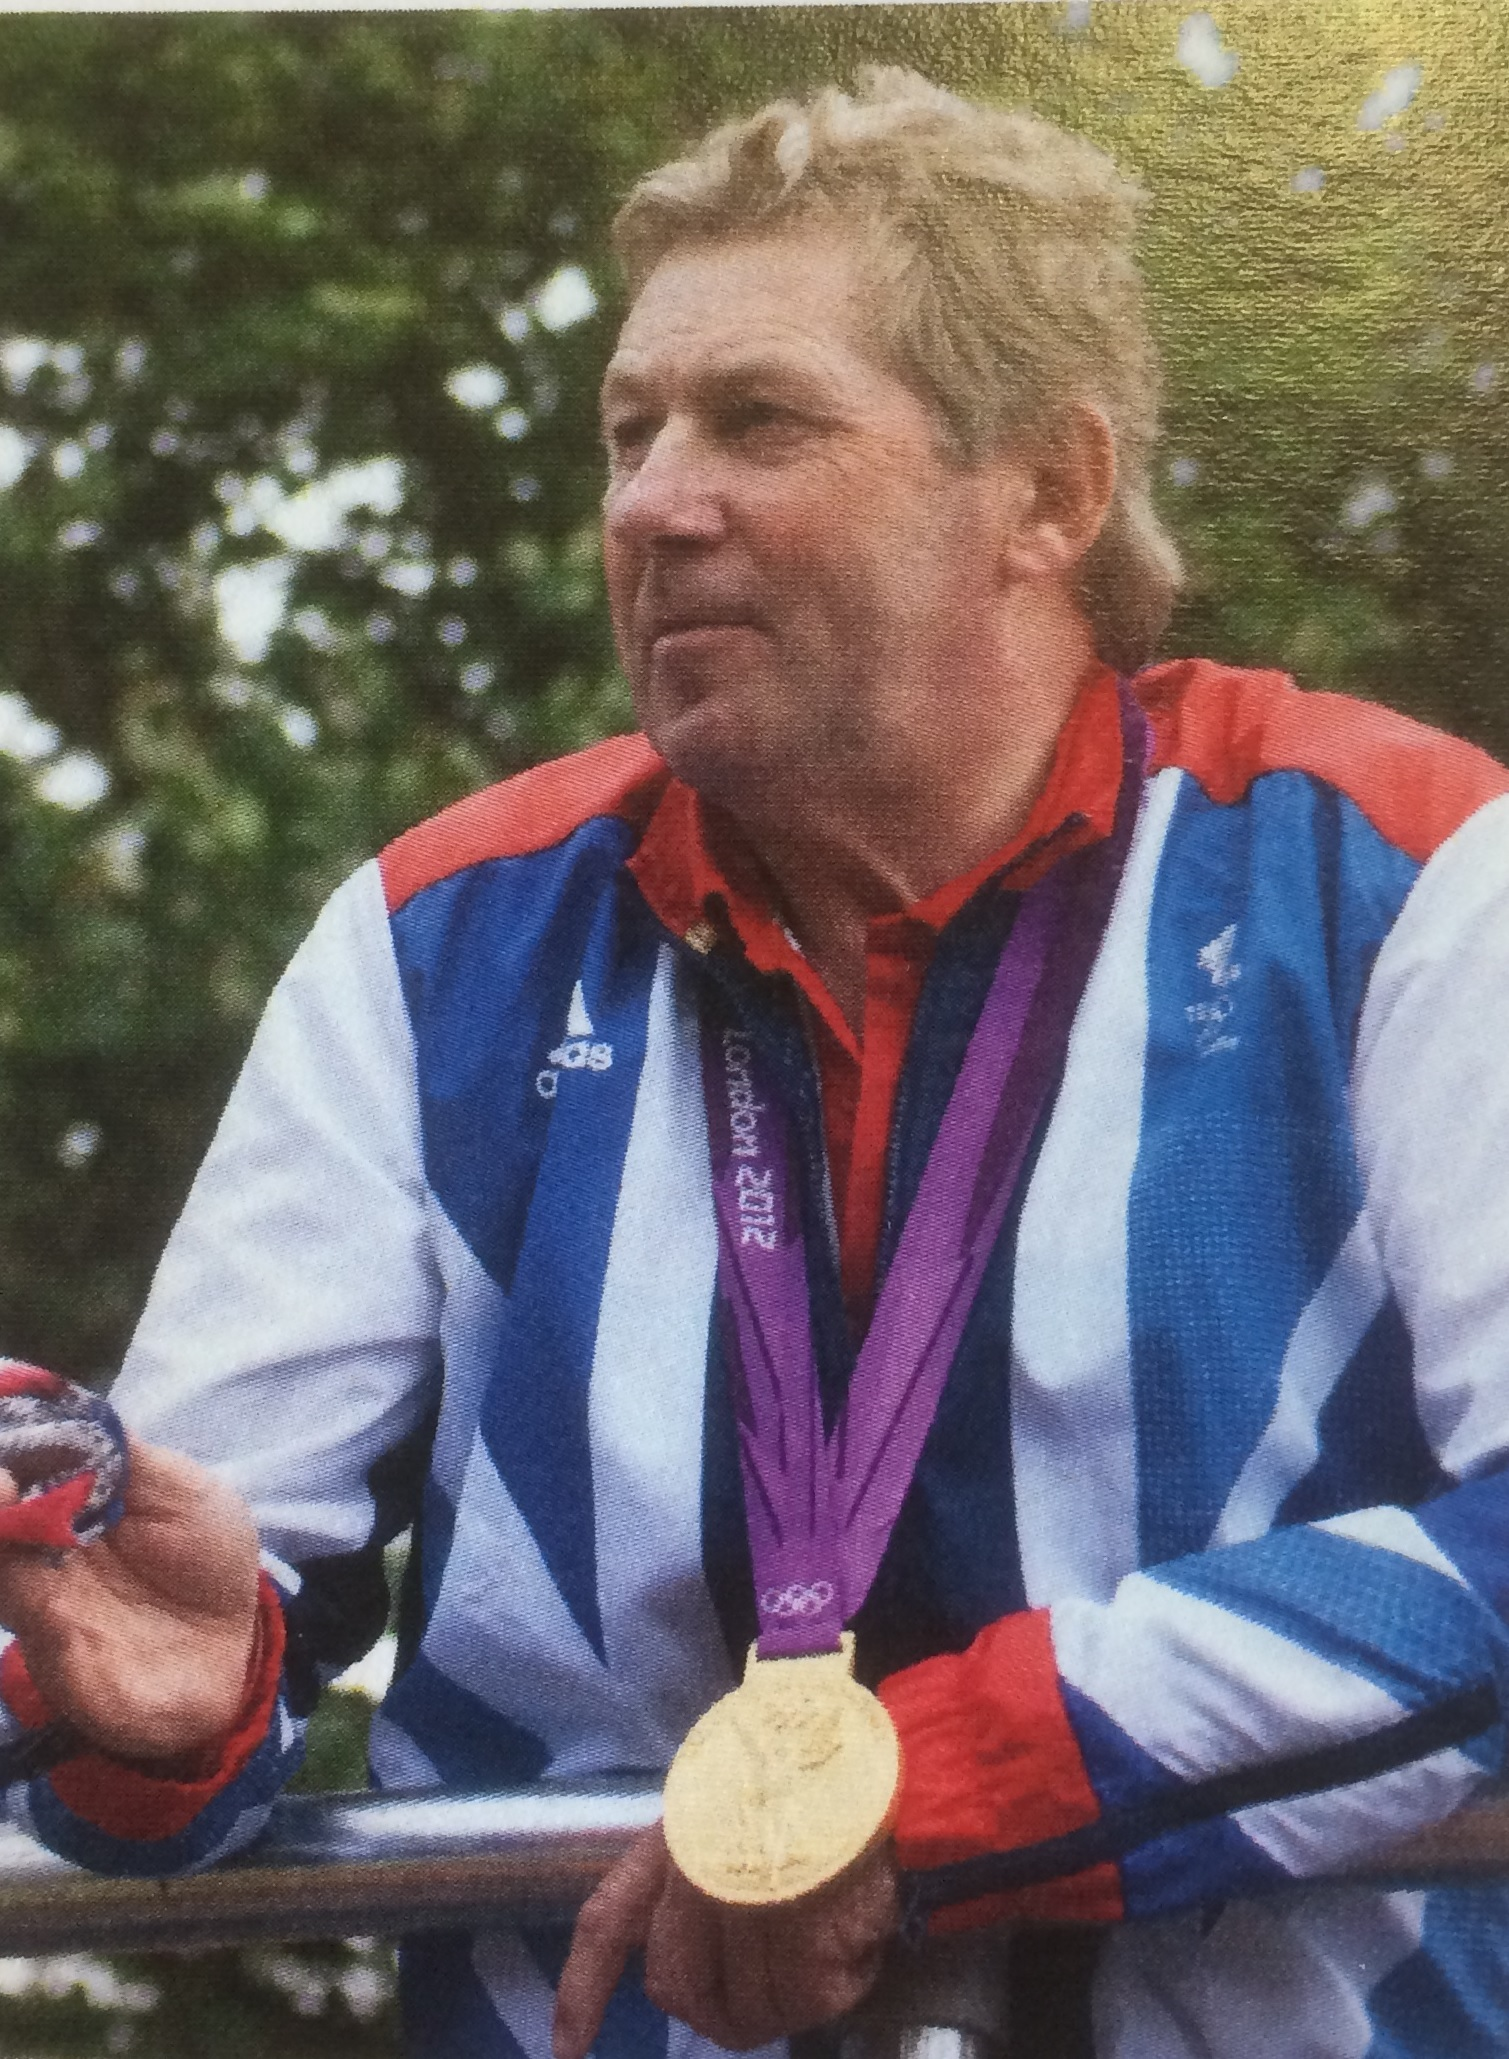 Nick Skelton will be speaking in Leominster next month